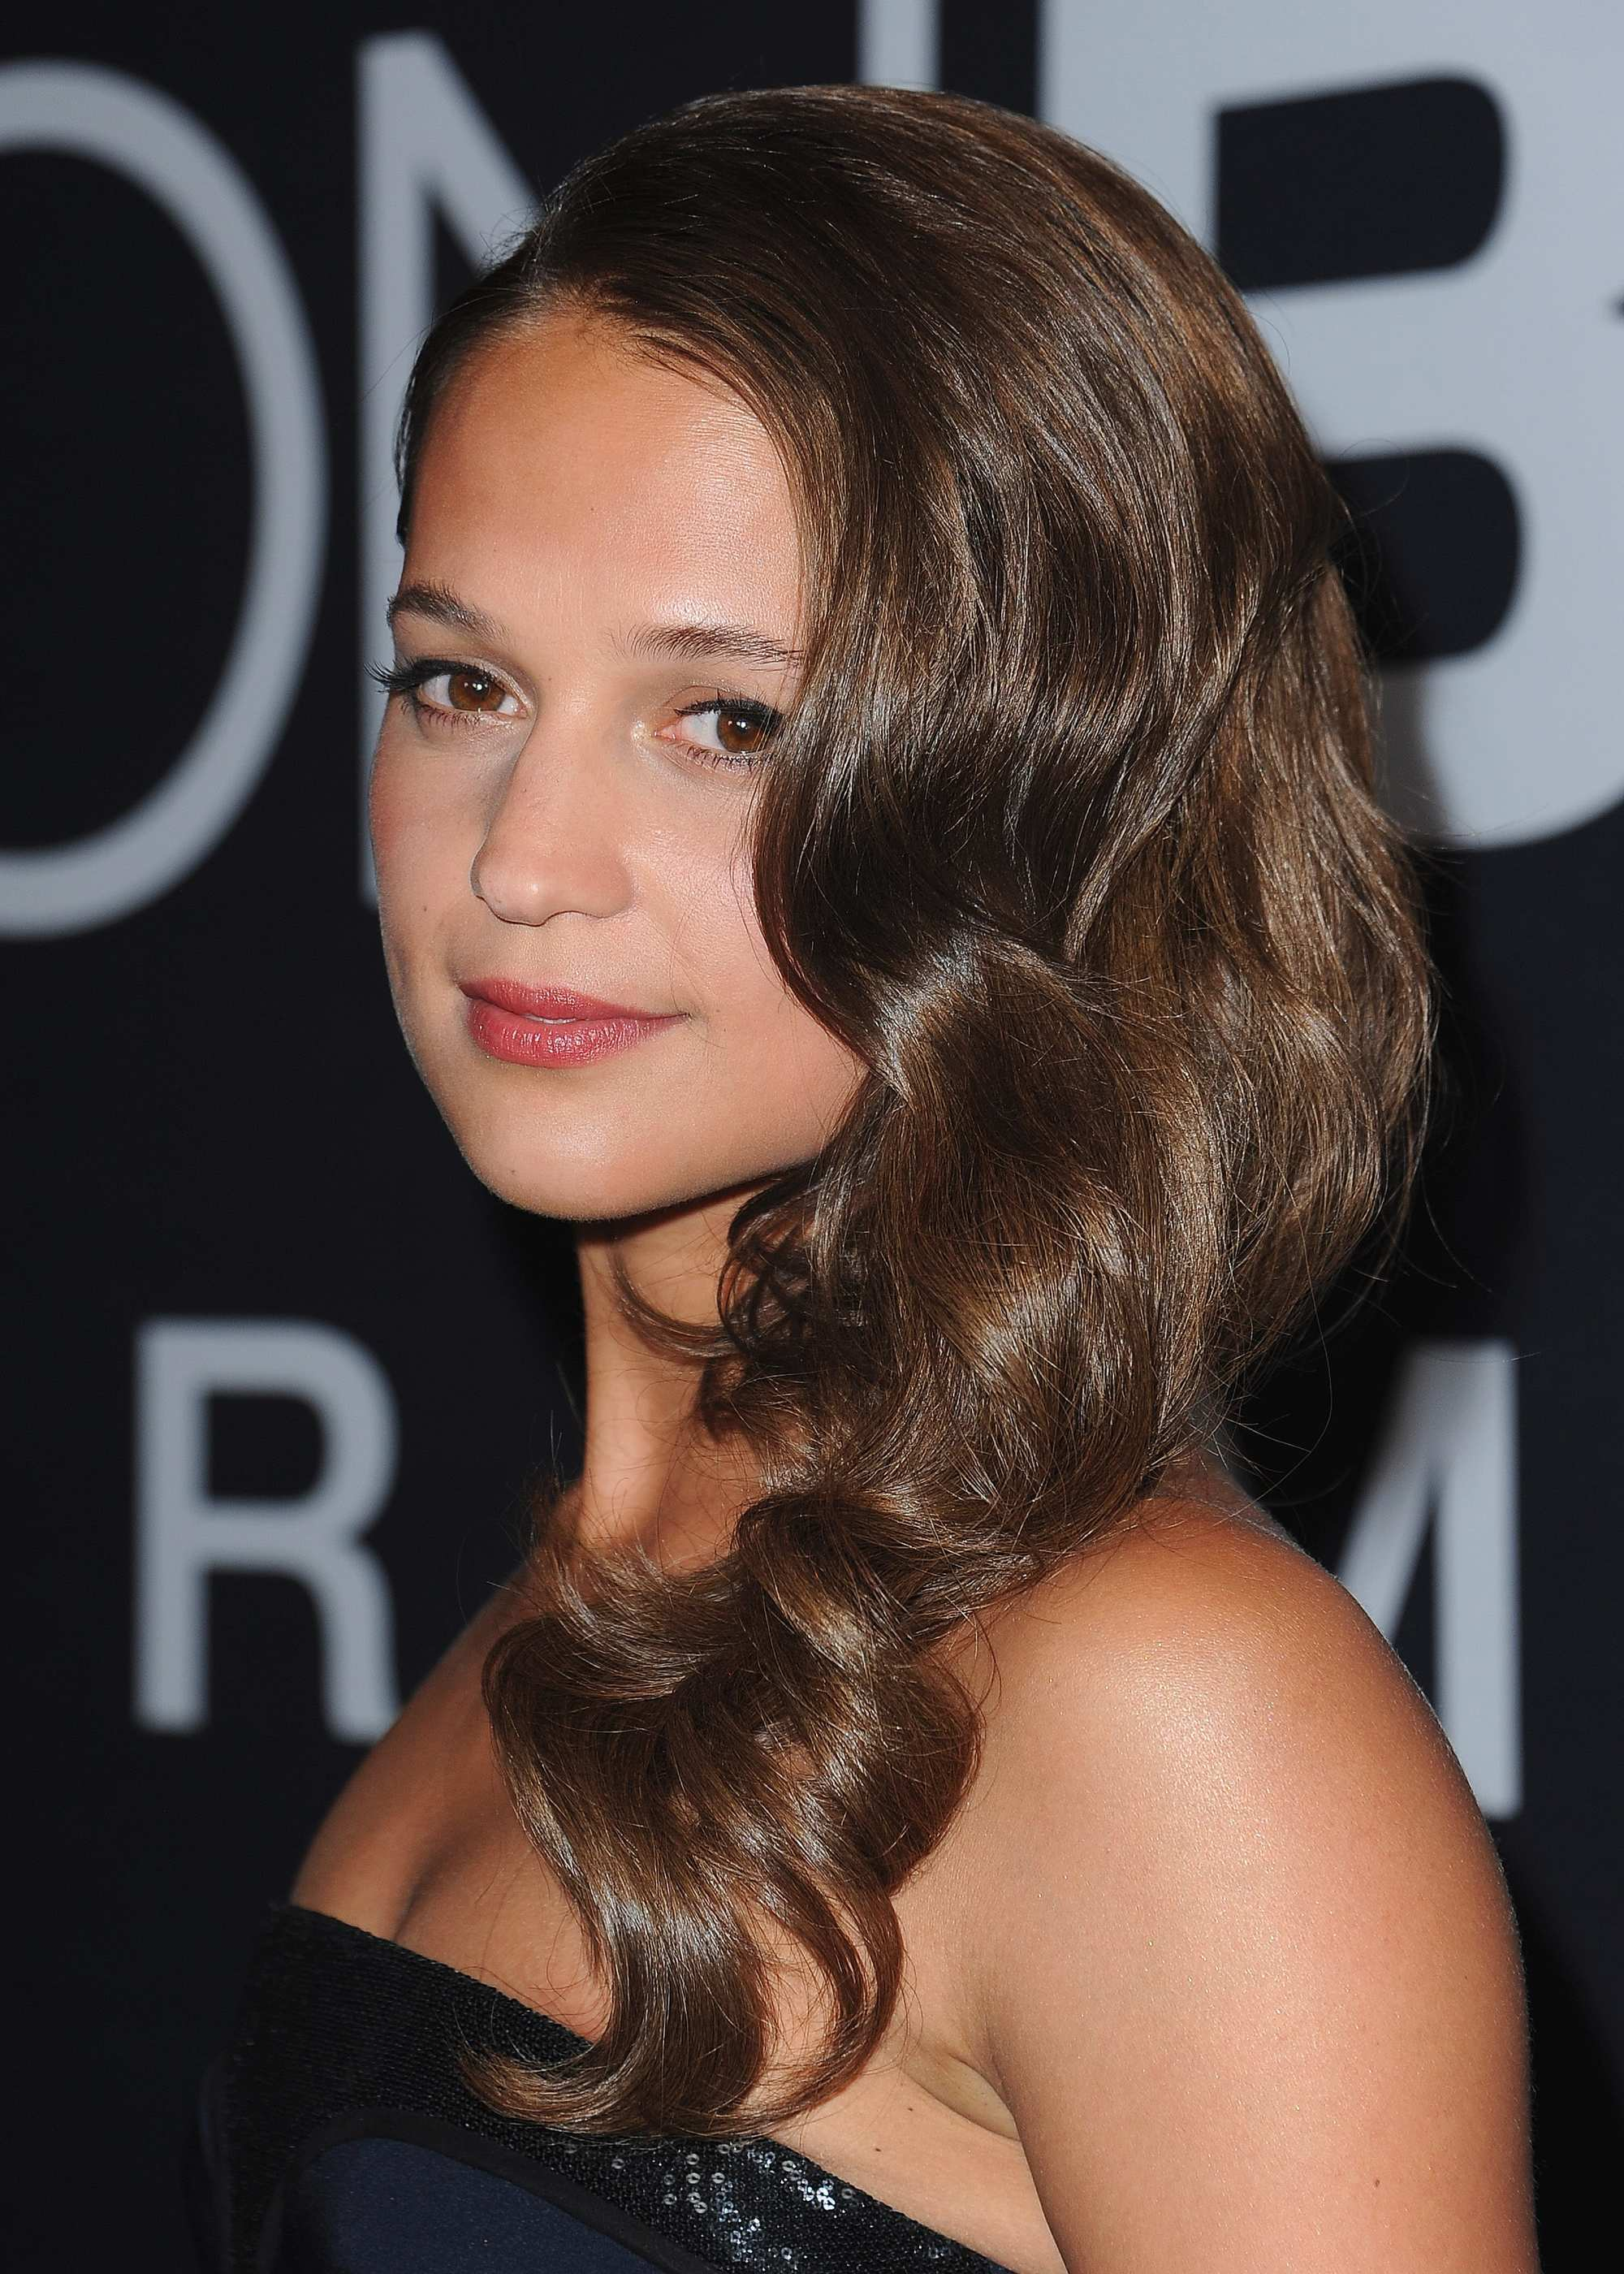 swedish actress alicia vikander at the Las Vegas premiere for jason bourne with glamorous hollywood waves in her hair